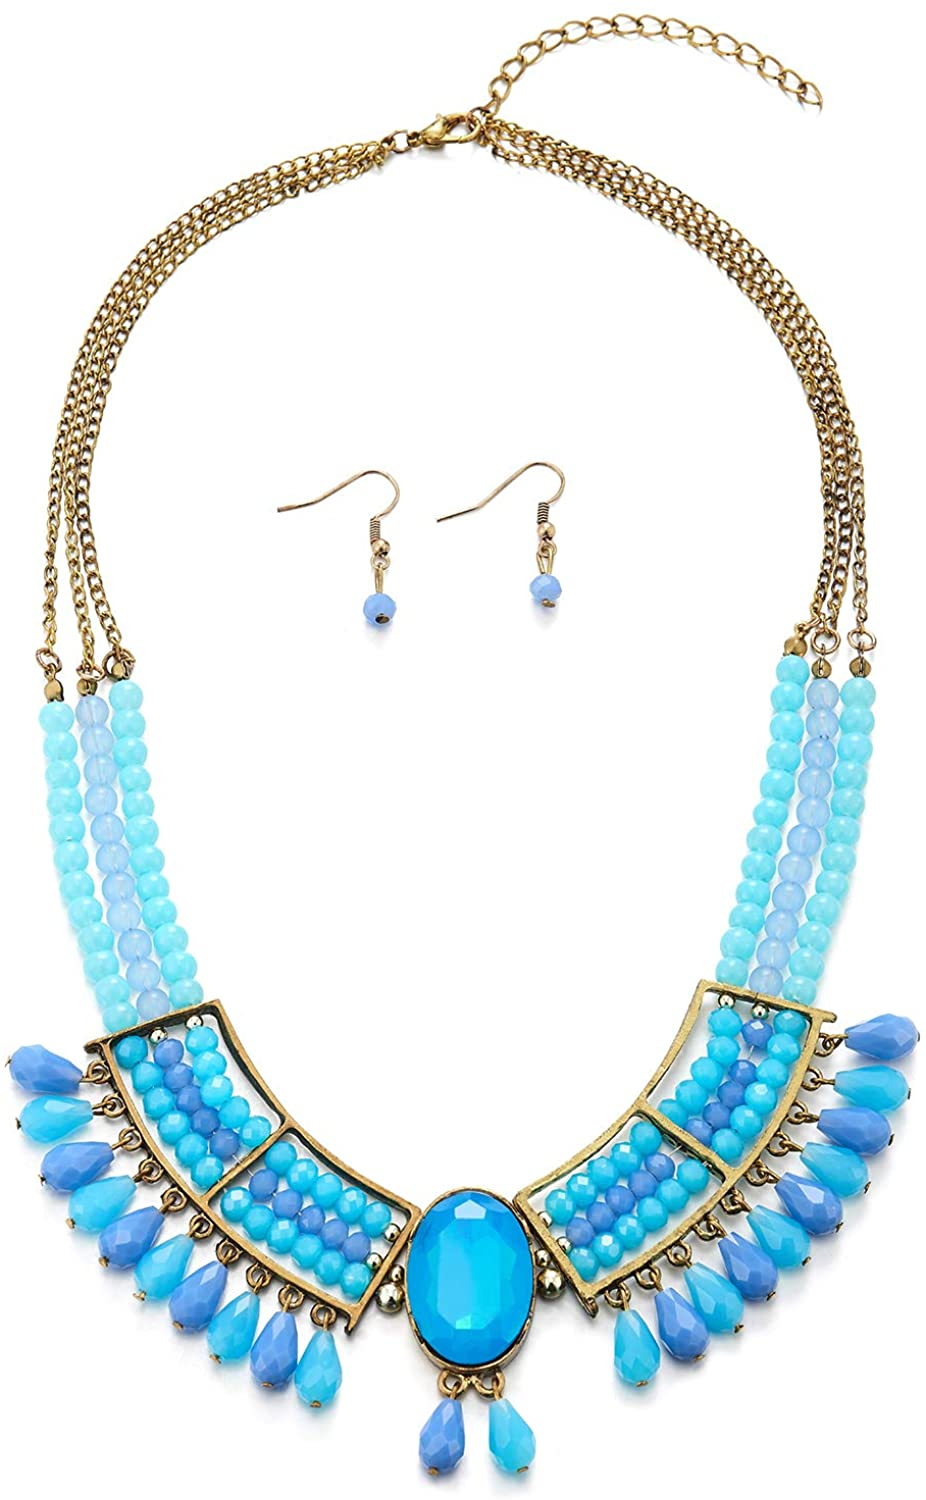 COOLSTEELANDBEYOND Vintage Bronze Necklace Three-Layer Aqua Blue Gem Stone Bead Chains Tassel Large Collar Earrings Set